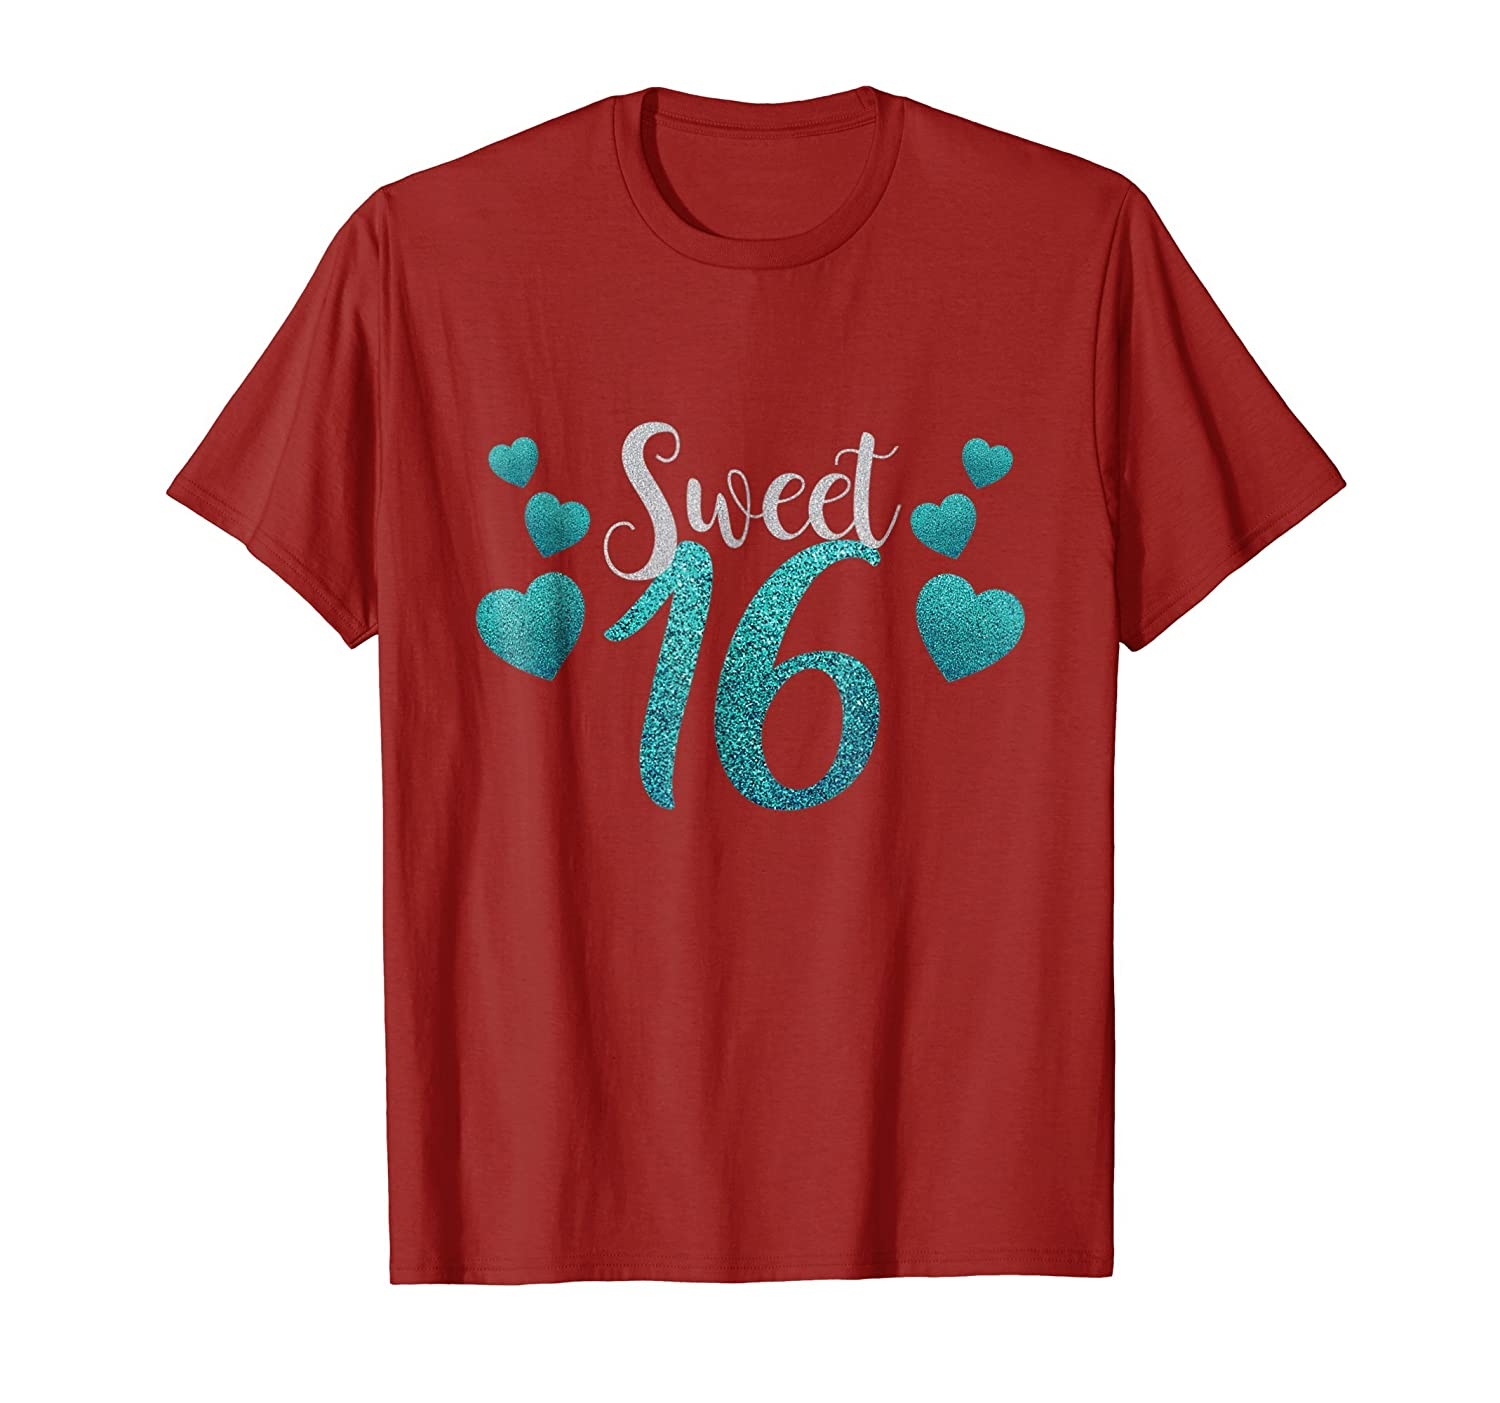 Sweet 16 T Shirt With Blue Hearts Clothing-Teehay